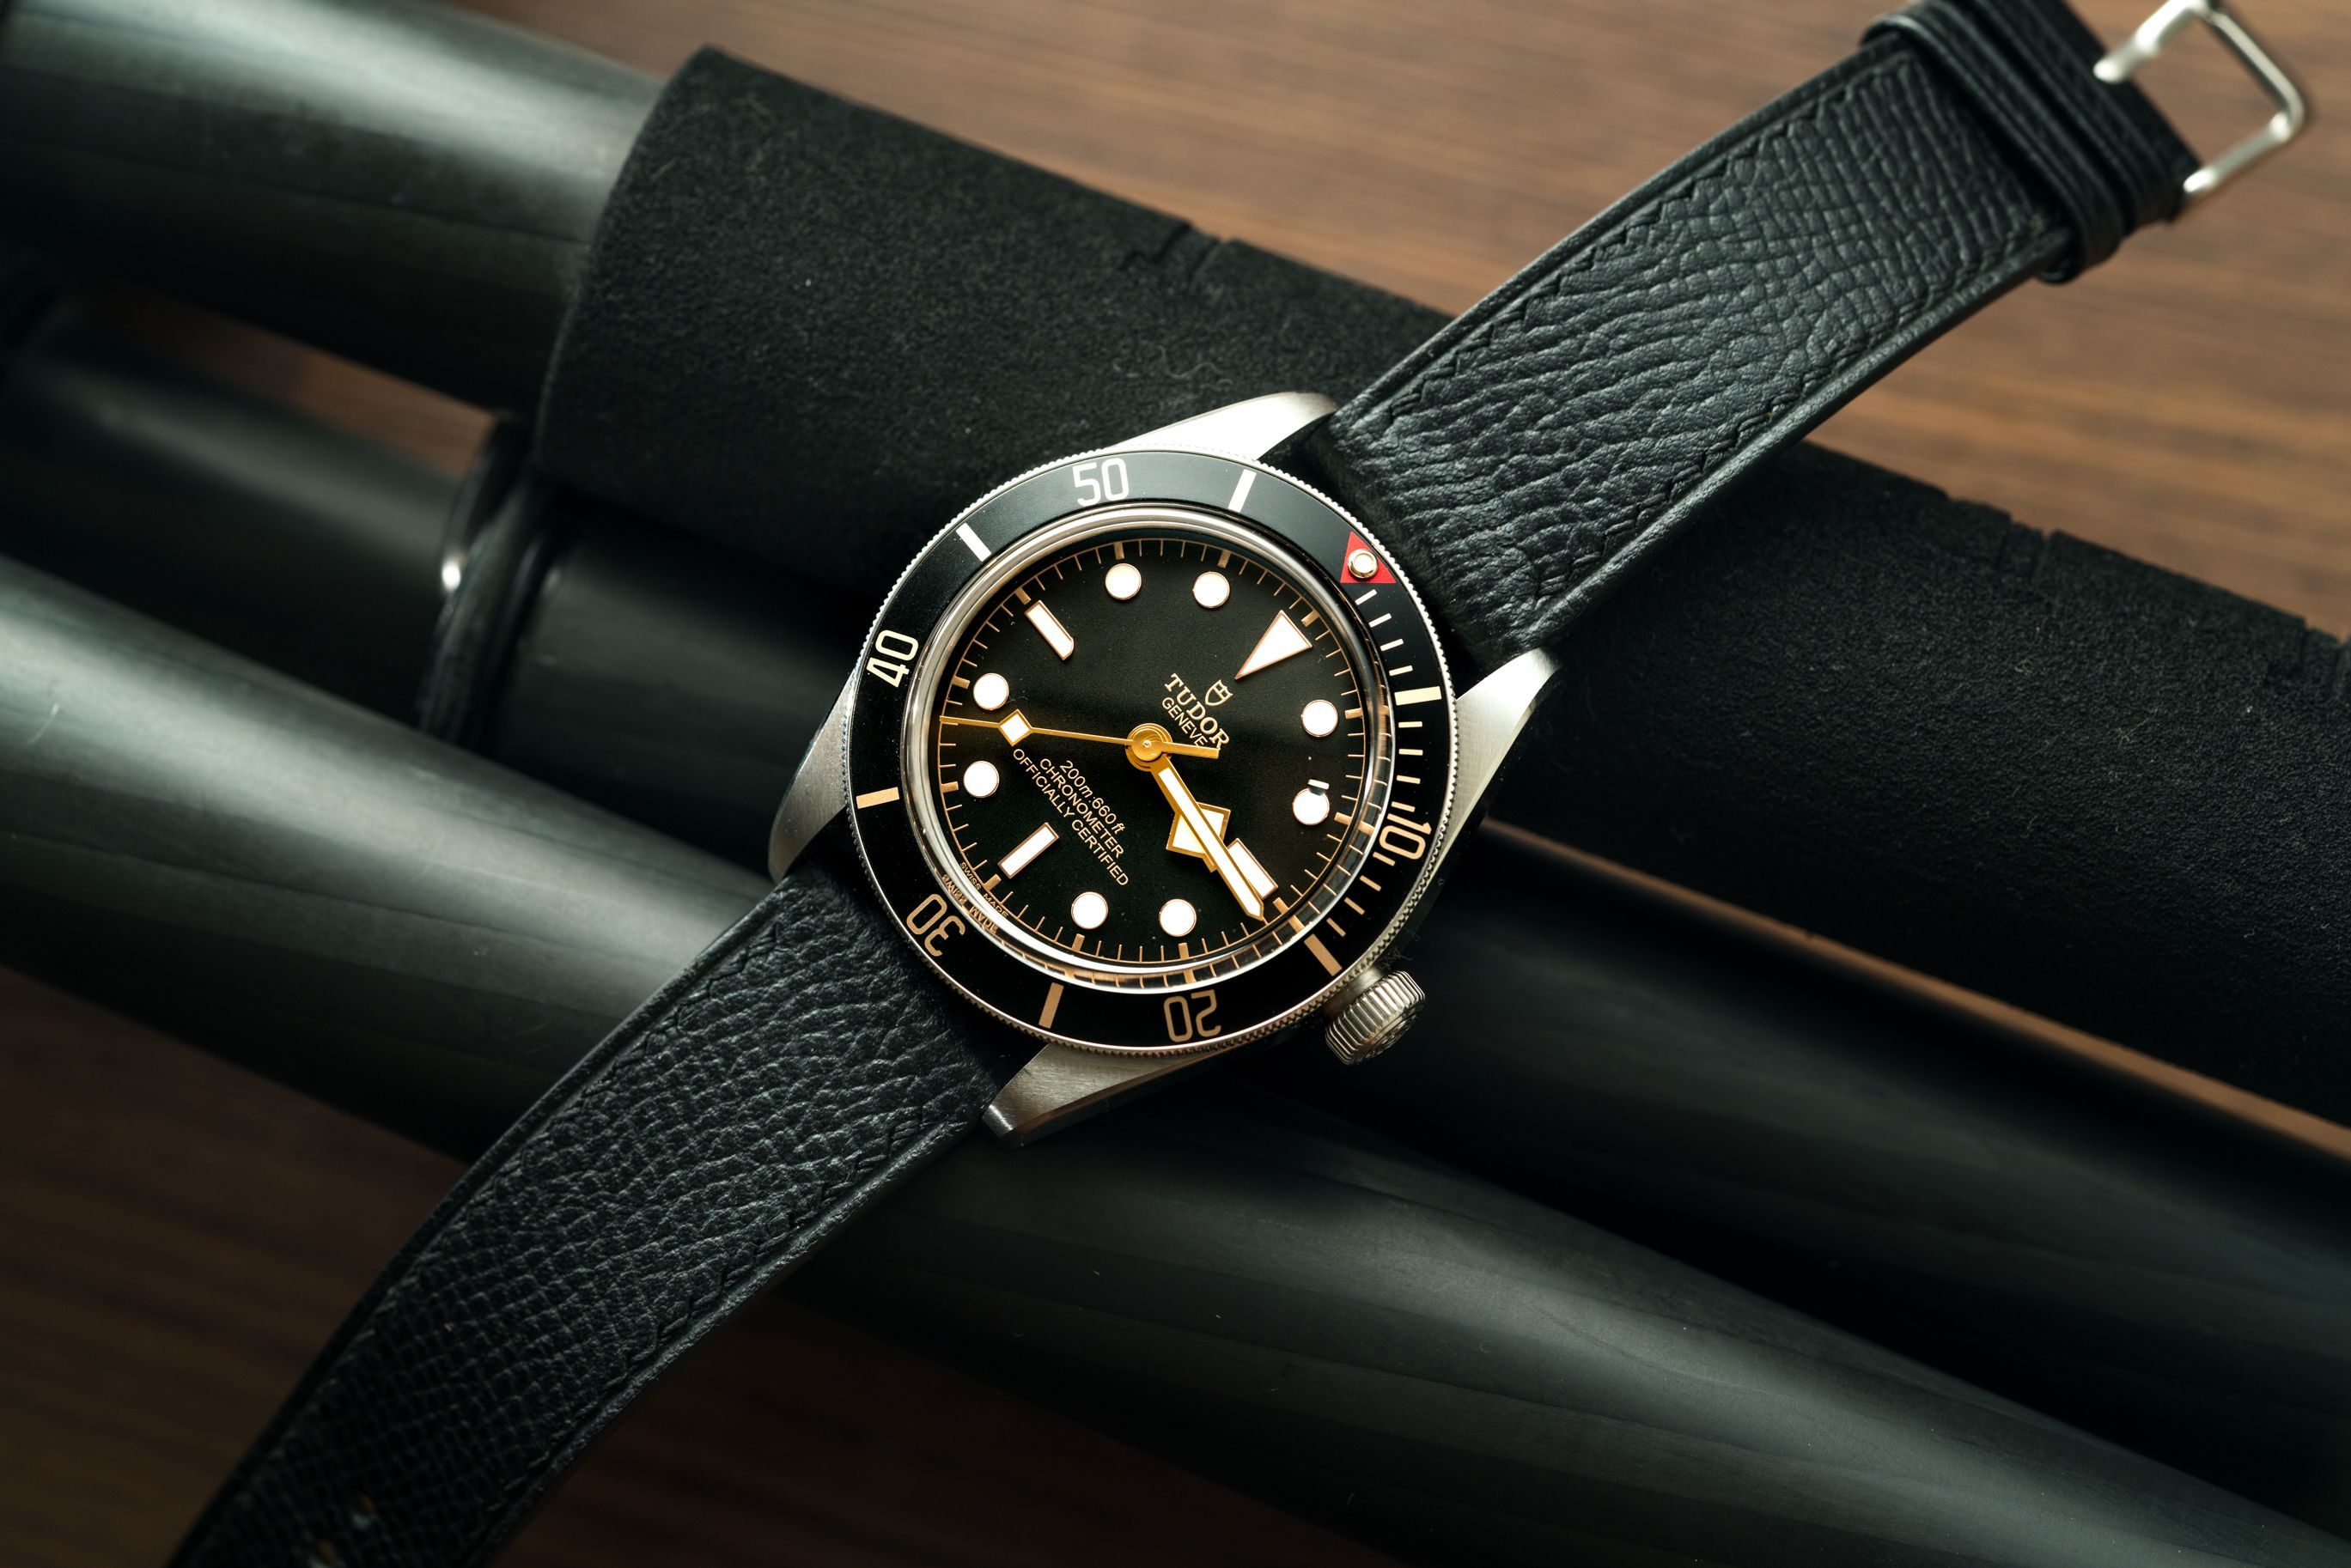 Tudor Black Bay 58 On Epsom Leather Strap Leather Watch Bands Tudor Black Bay Top Watches For Men